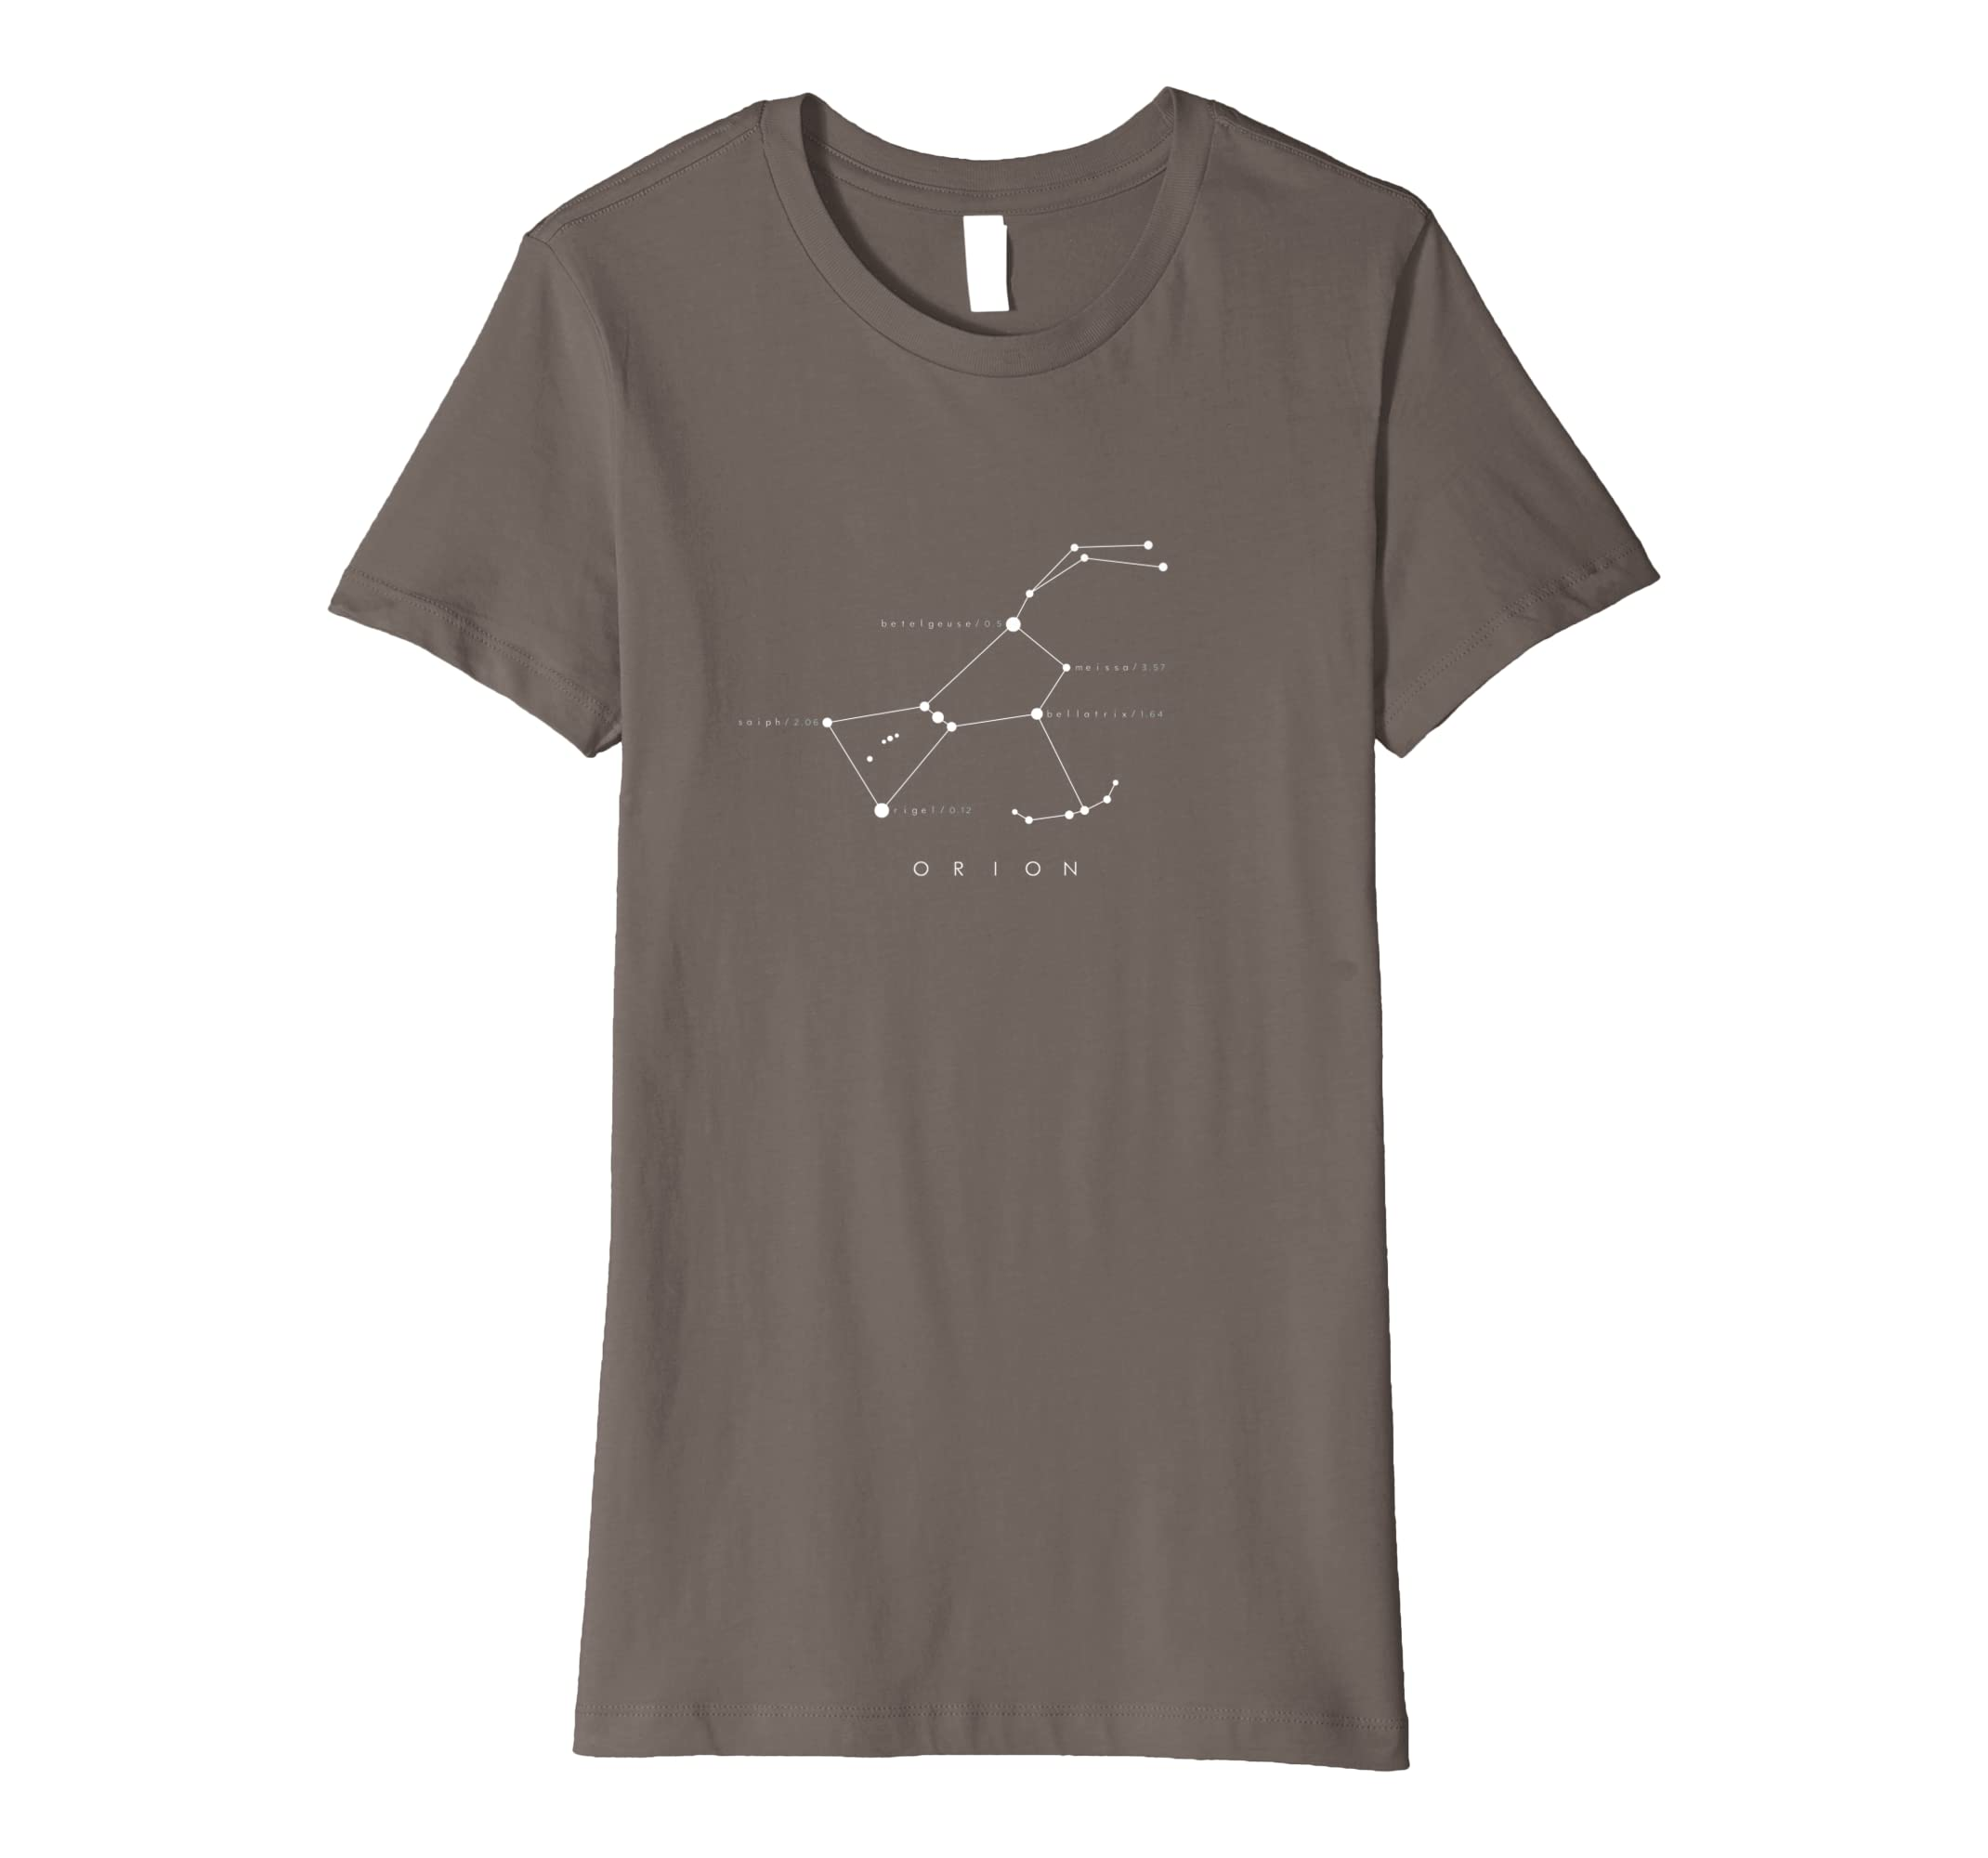 154b11e767fd3 Orion Constellation T-Shirt - Astronomy Stargazing: Amazon.co.uk ...